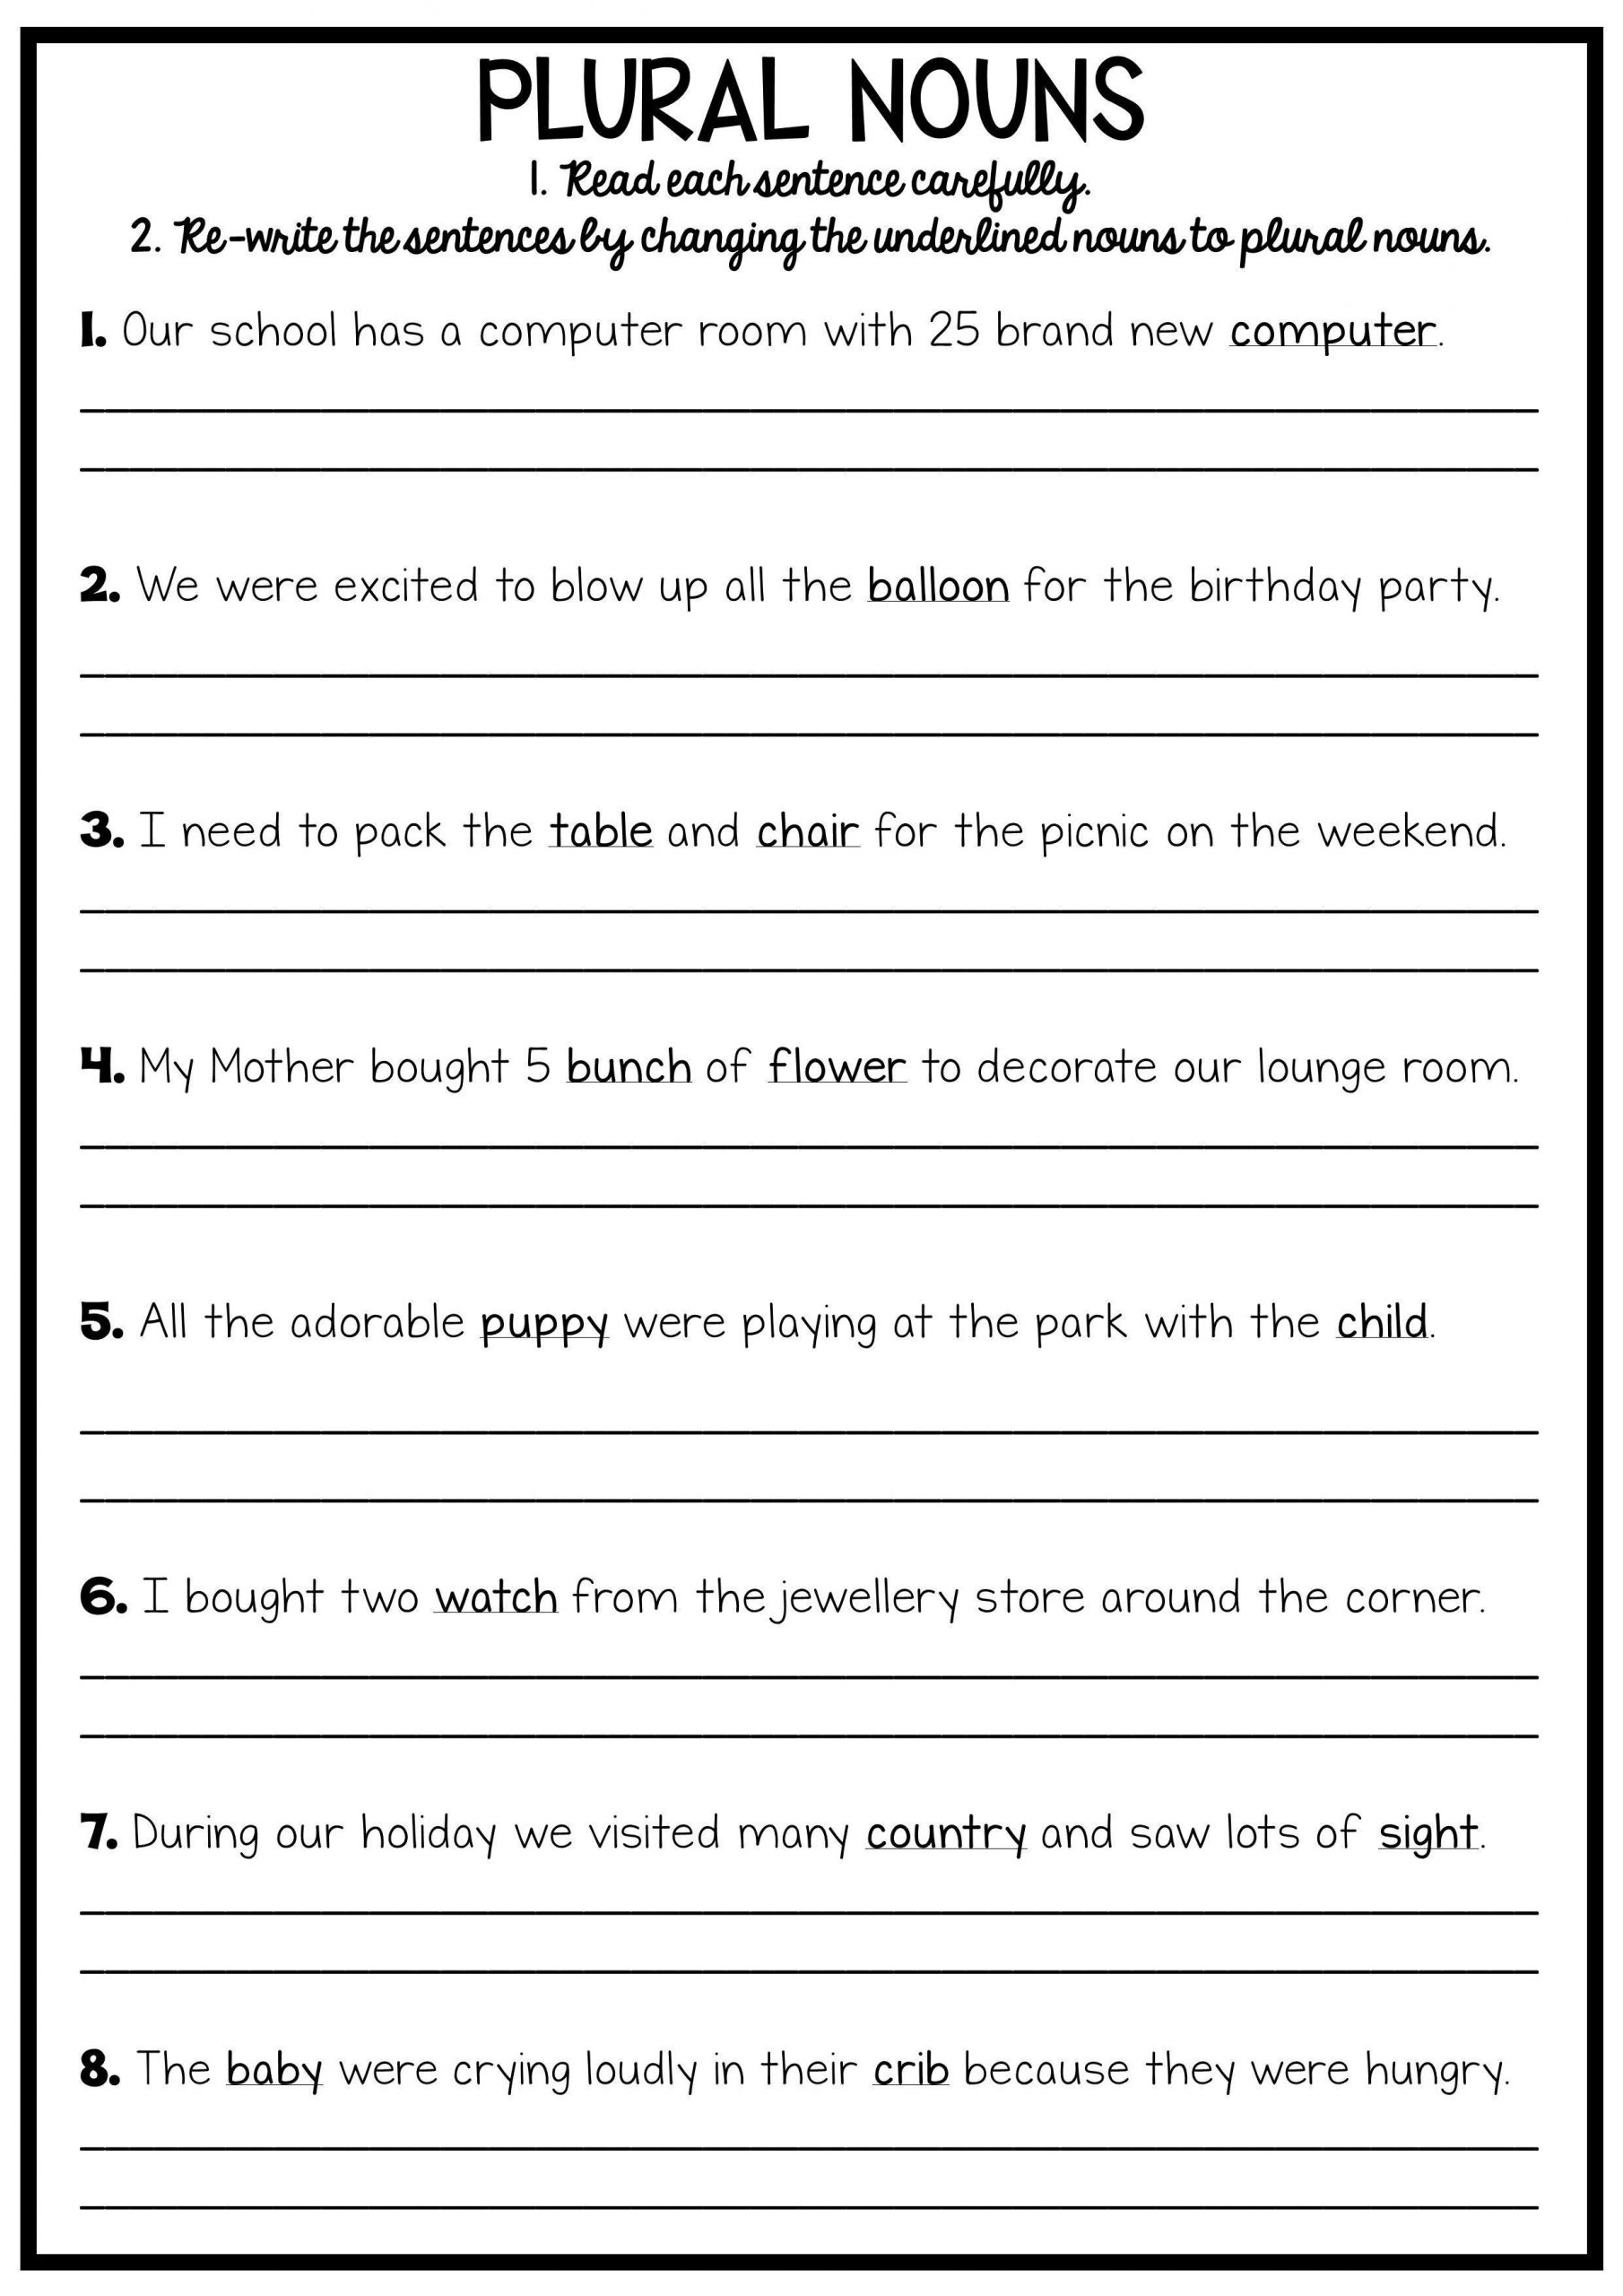 Writing Sentences Worksheets 3rd Grade Writing Worksheets for 3rd Grade